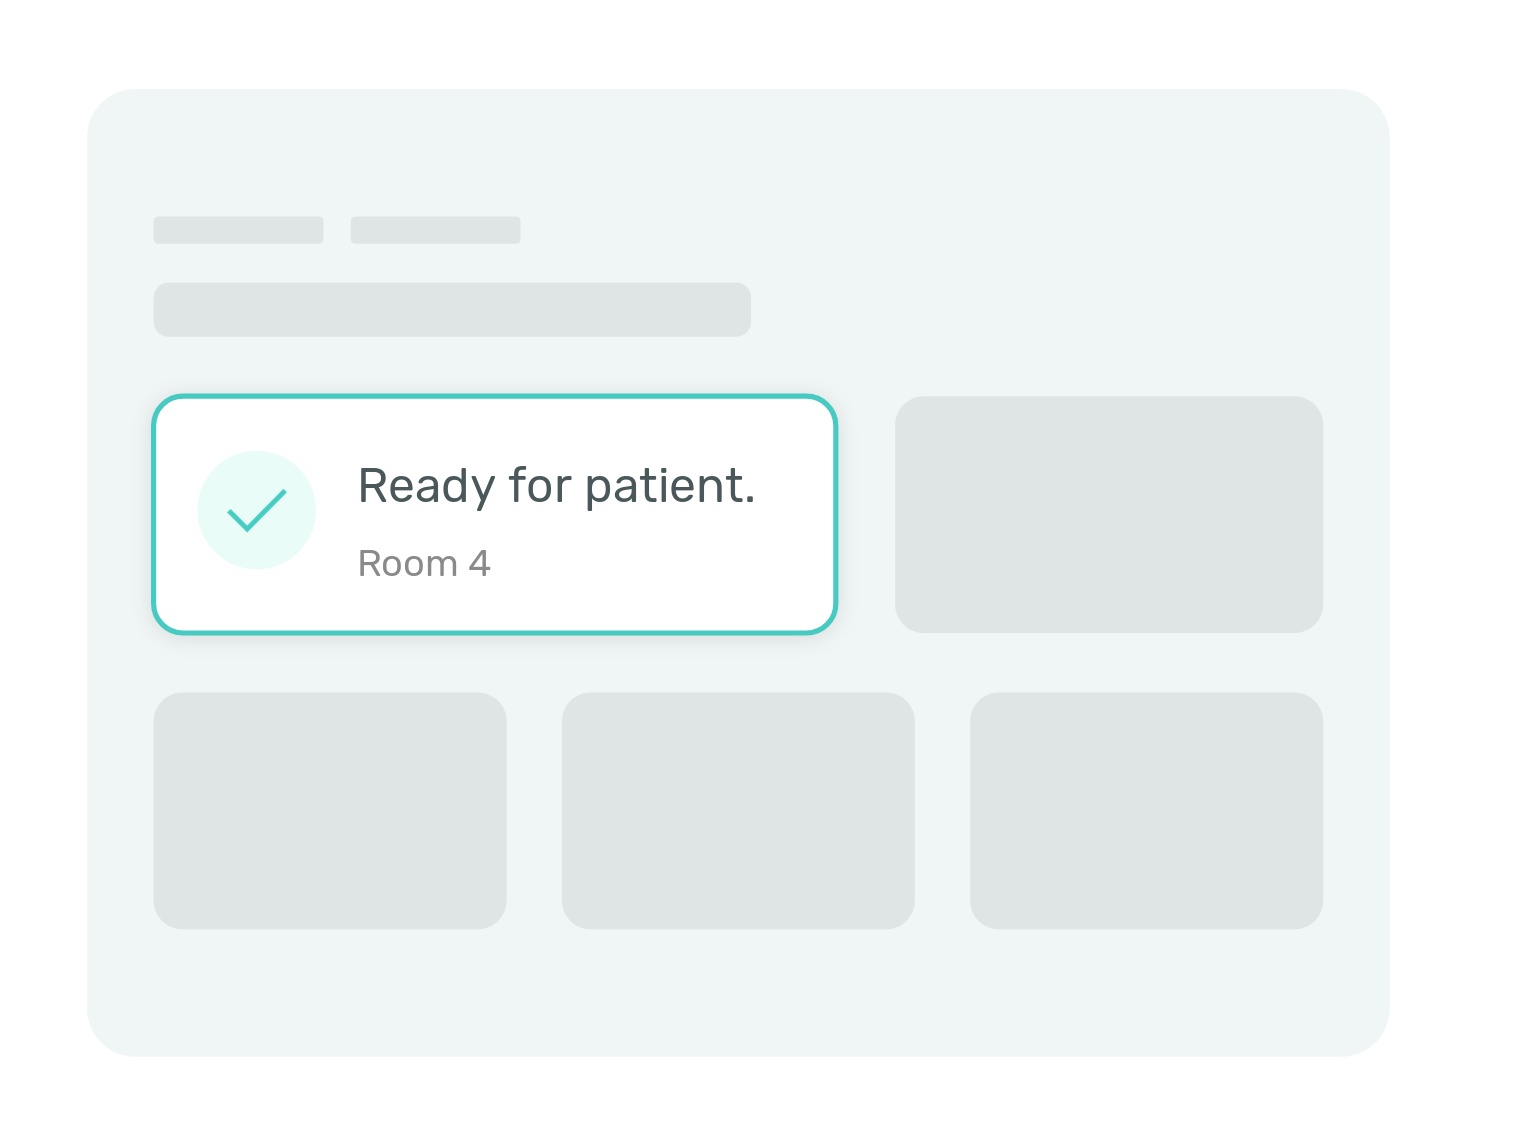 Automated patient room assignment